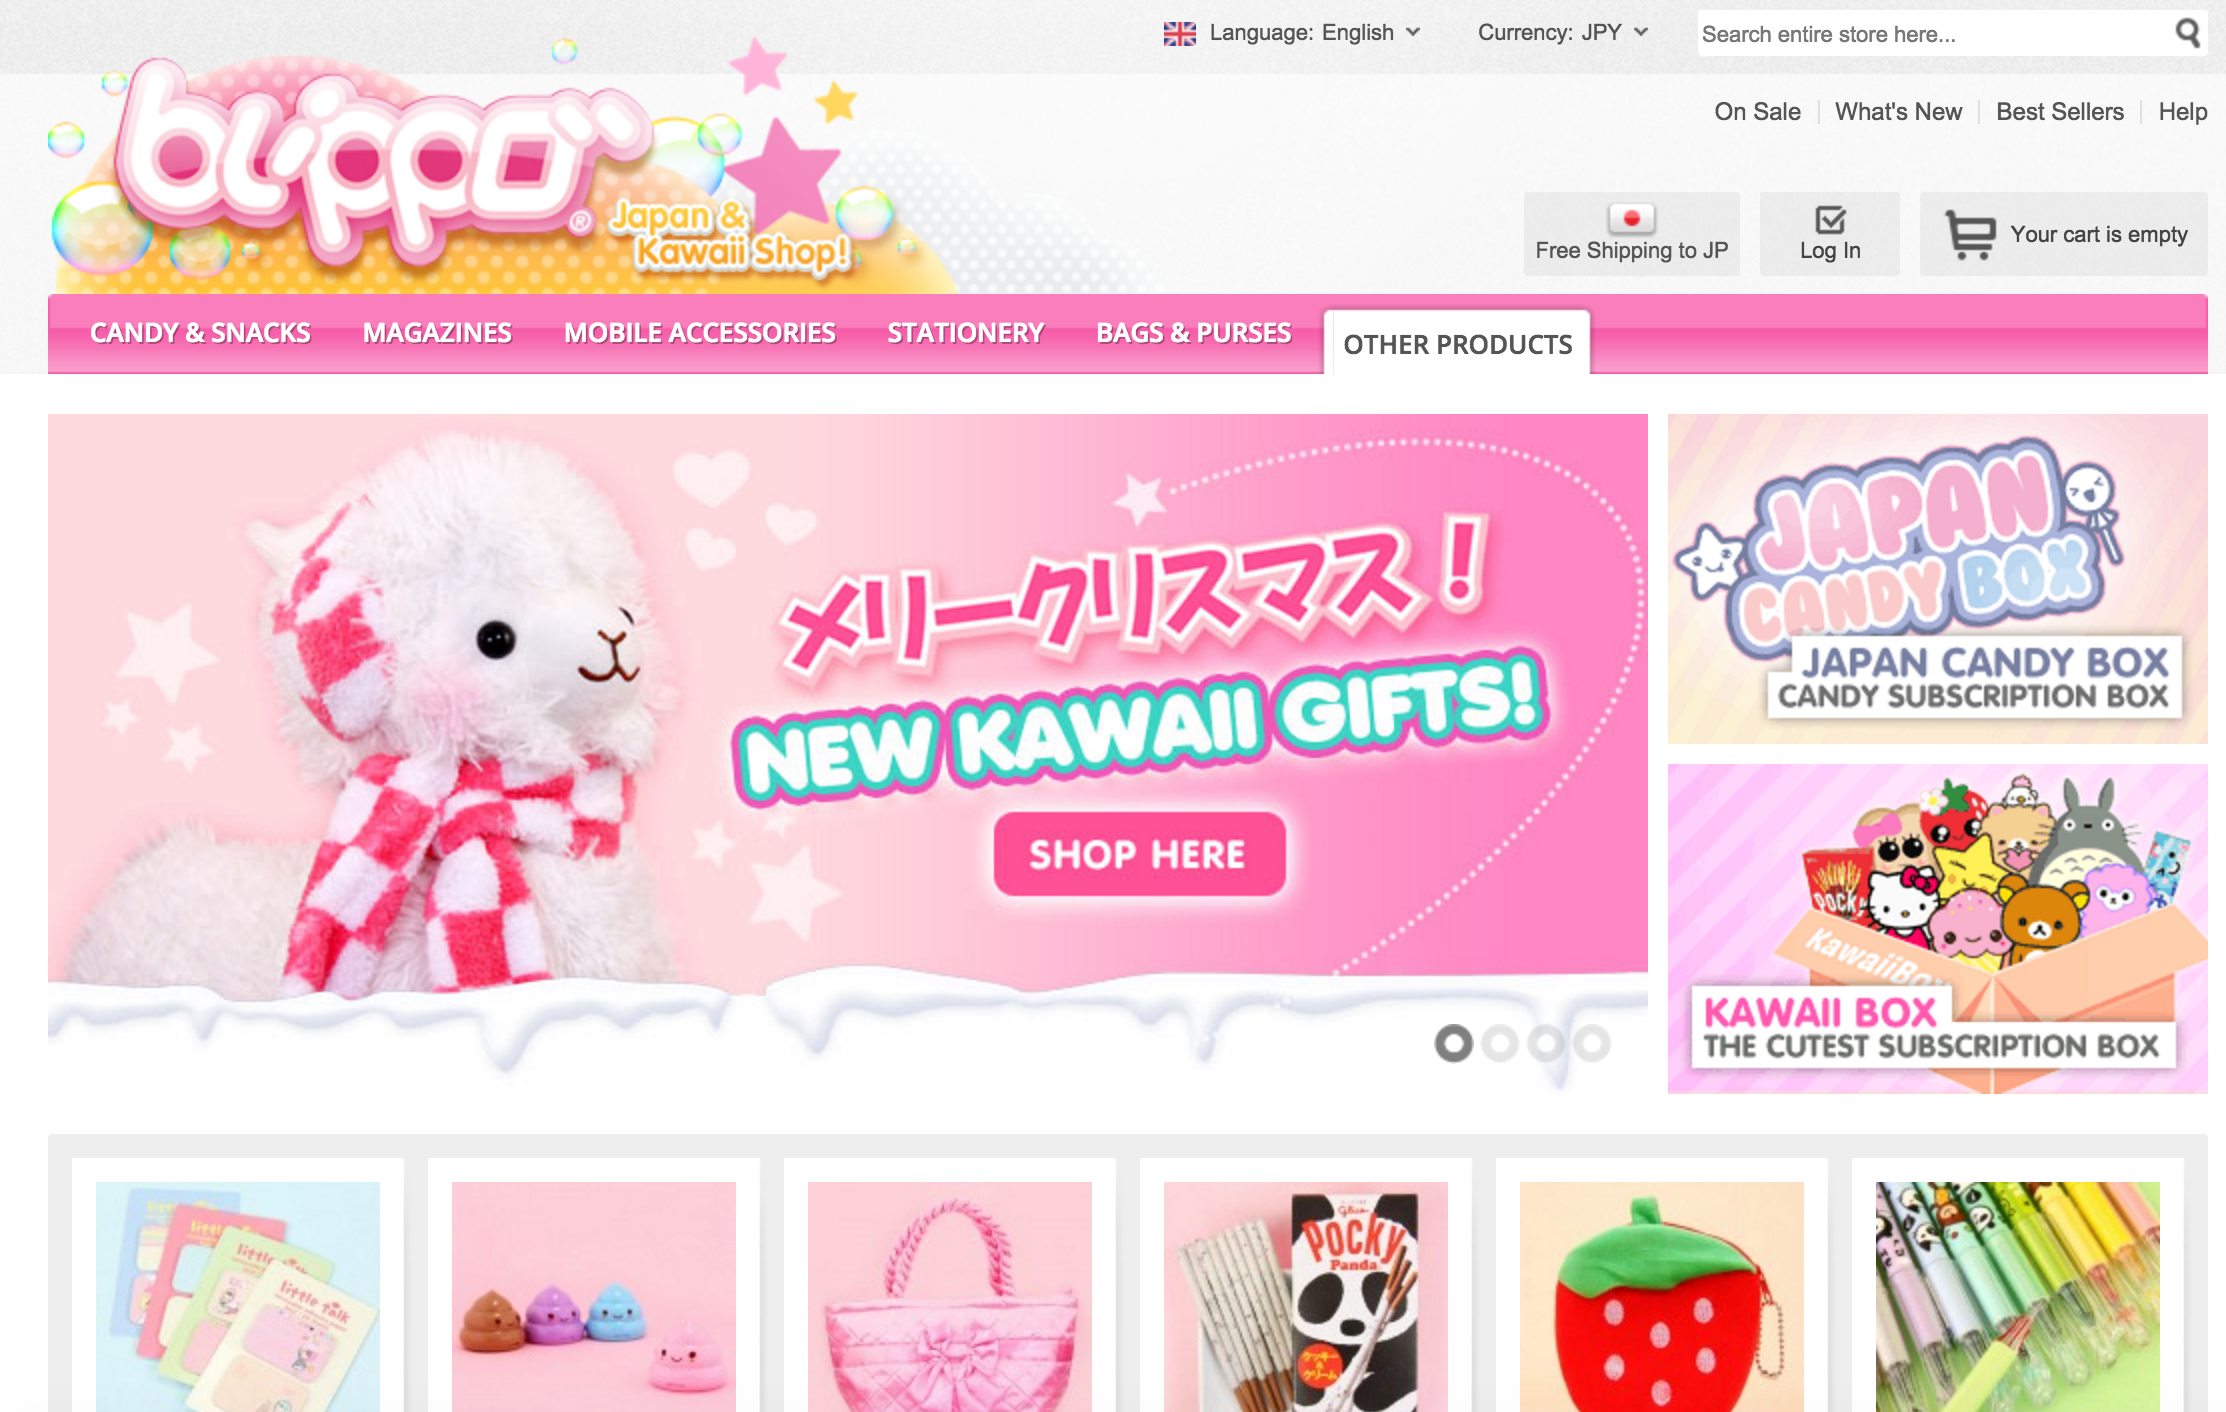 Blippo Kawaii Shop Rainbowholic